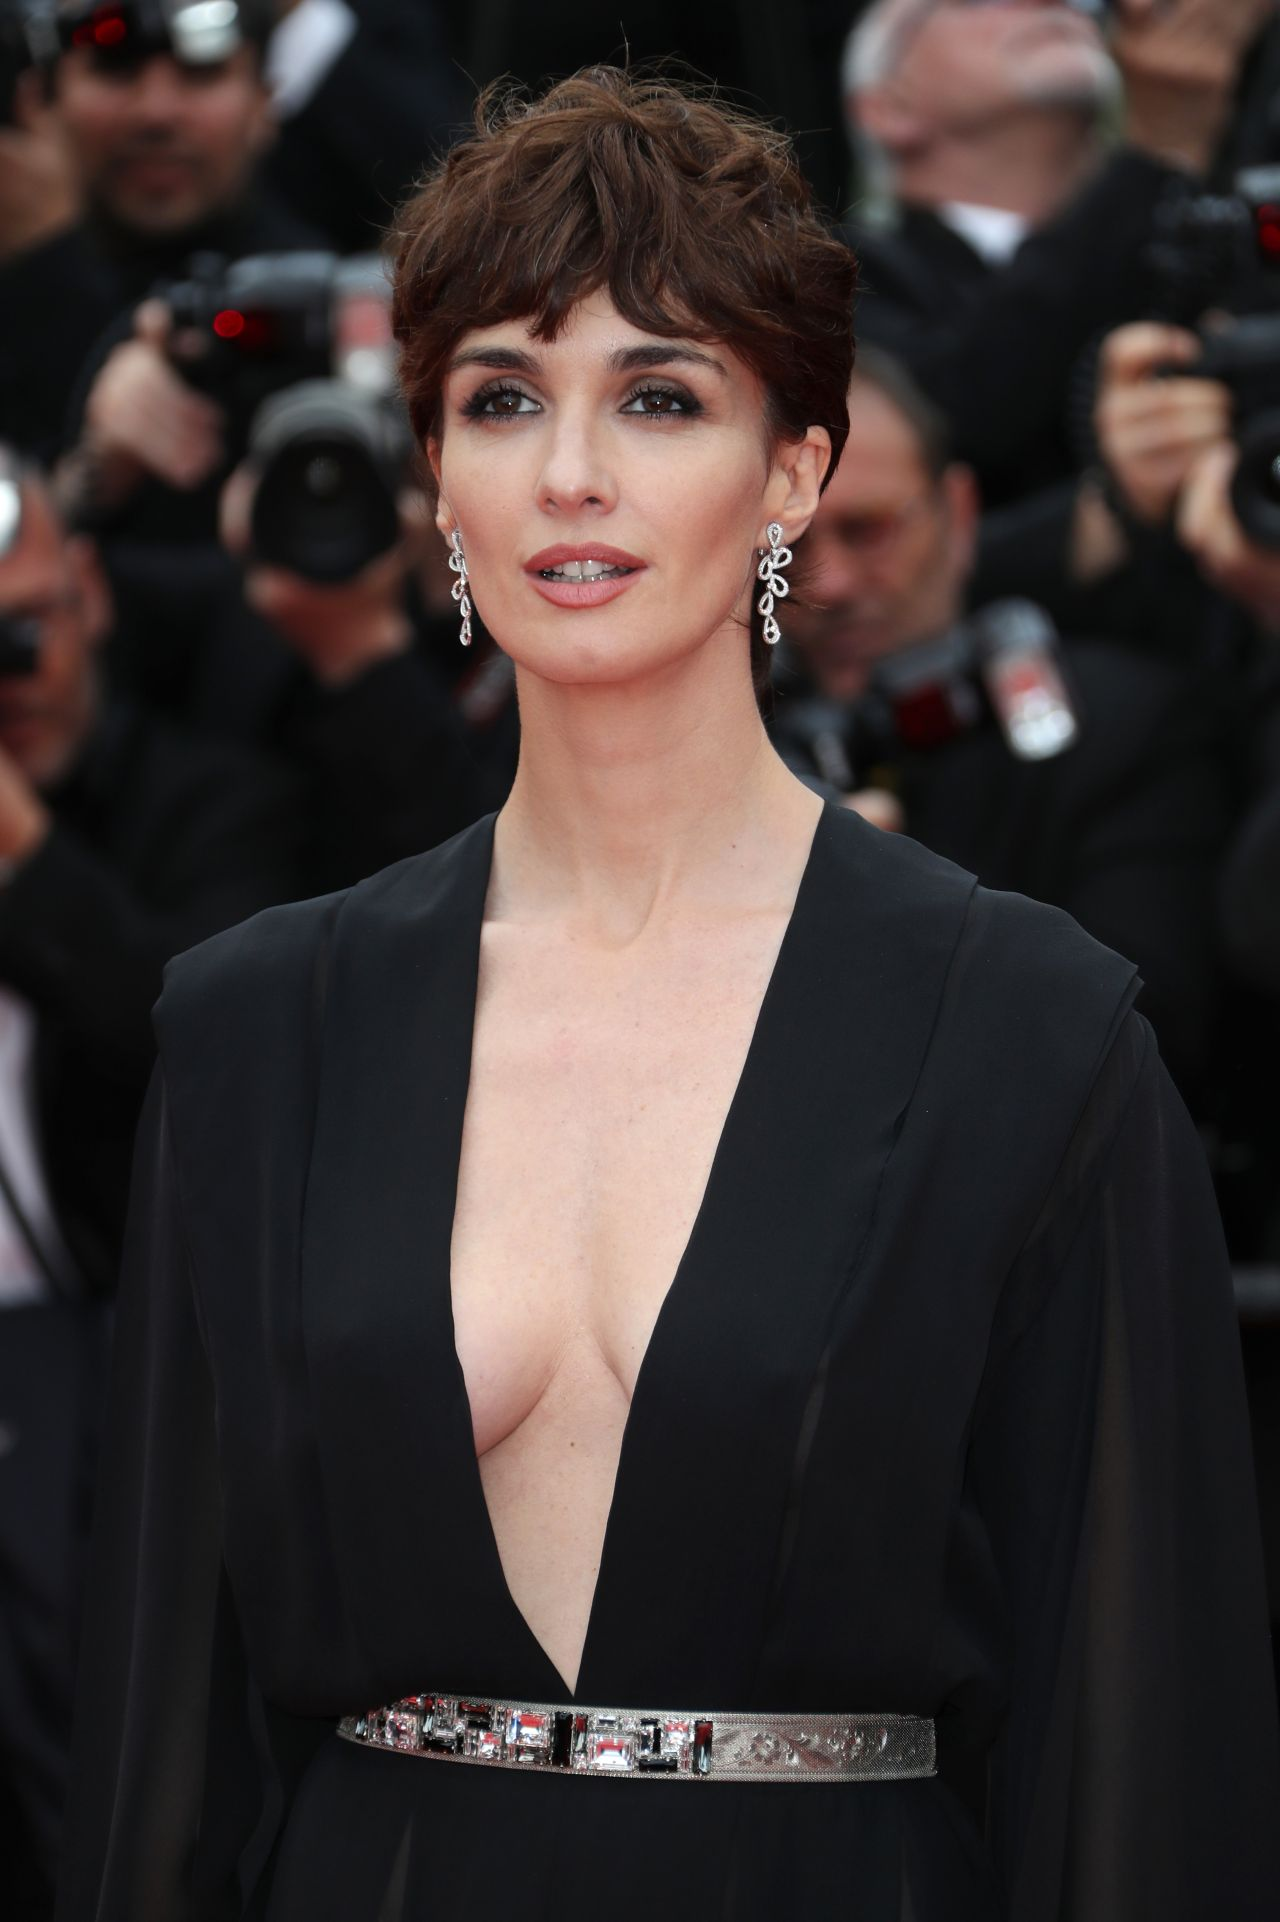 Paz Vega The Bfg Screening At Cannes Film Festival 5